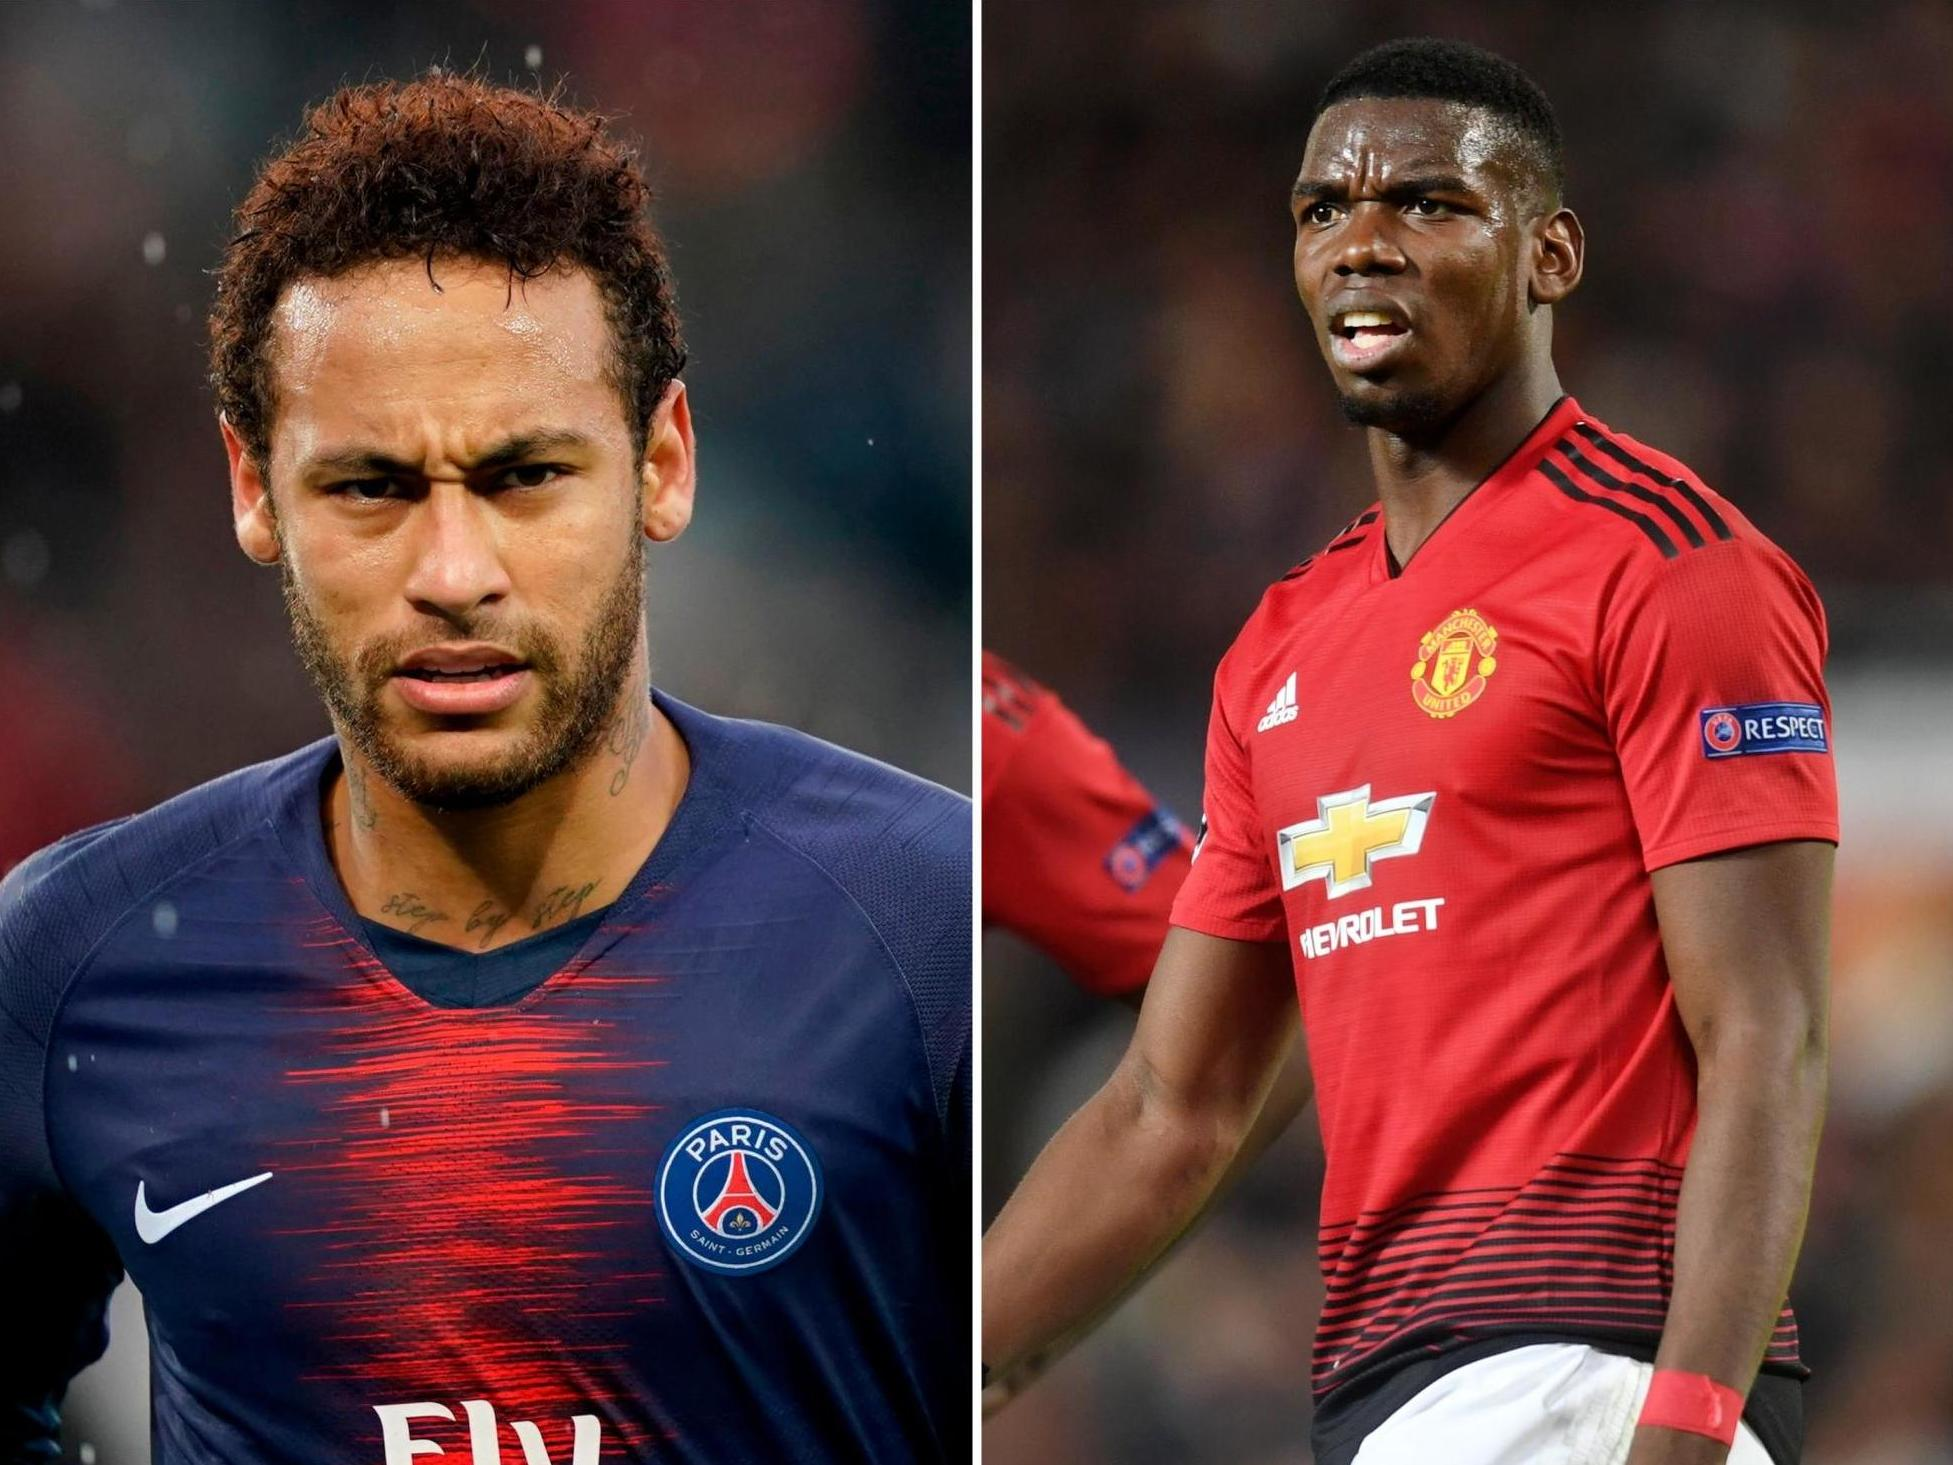 Manchester United transfer news: Neymar swap deal for Paul Pogba rejected by Ed Woodward for two reasons